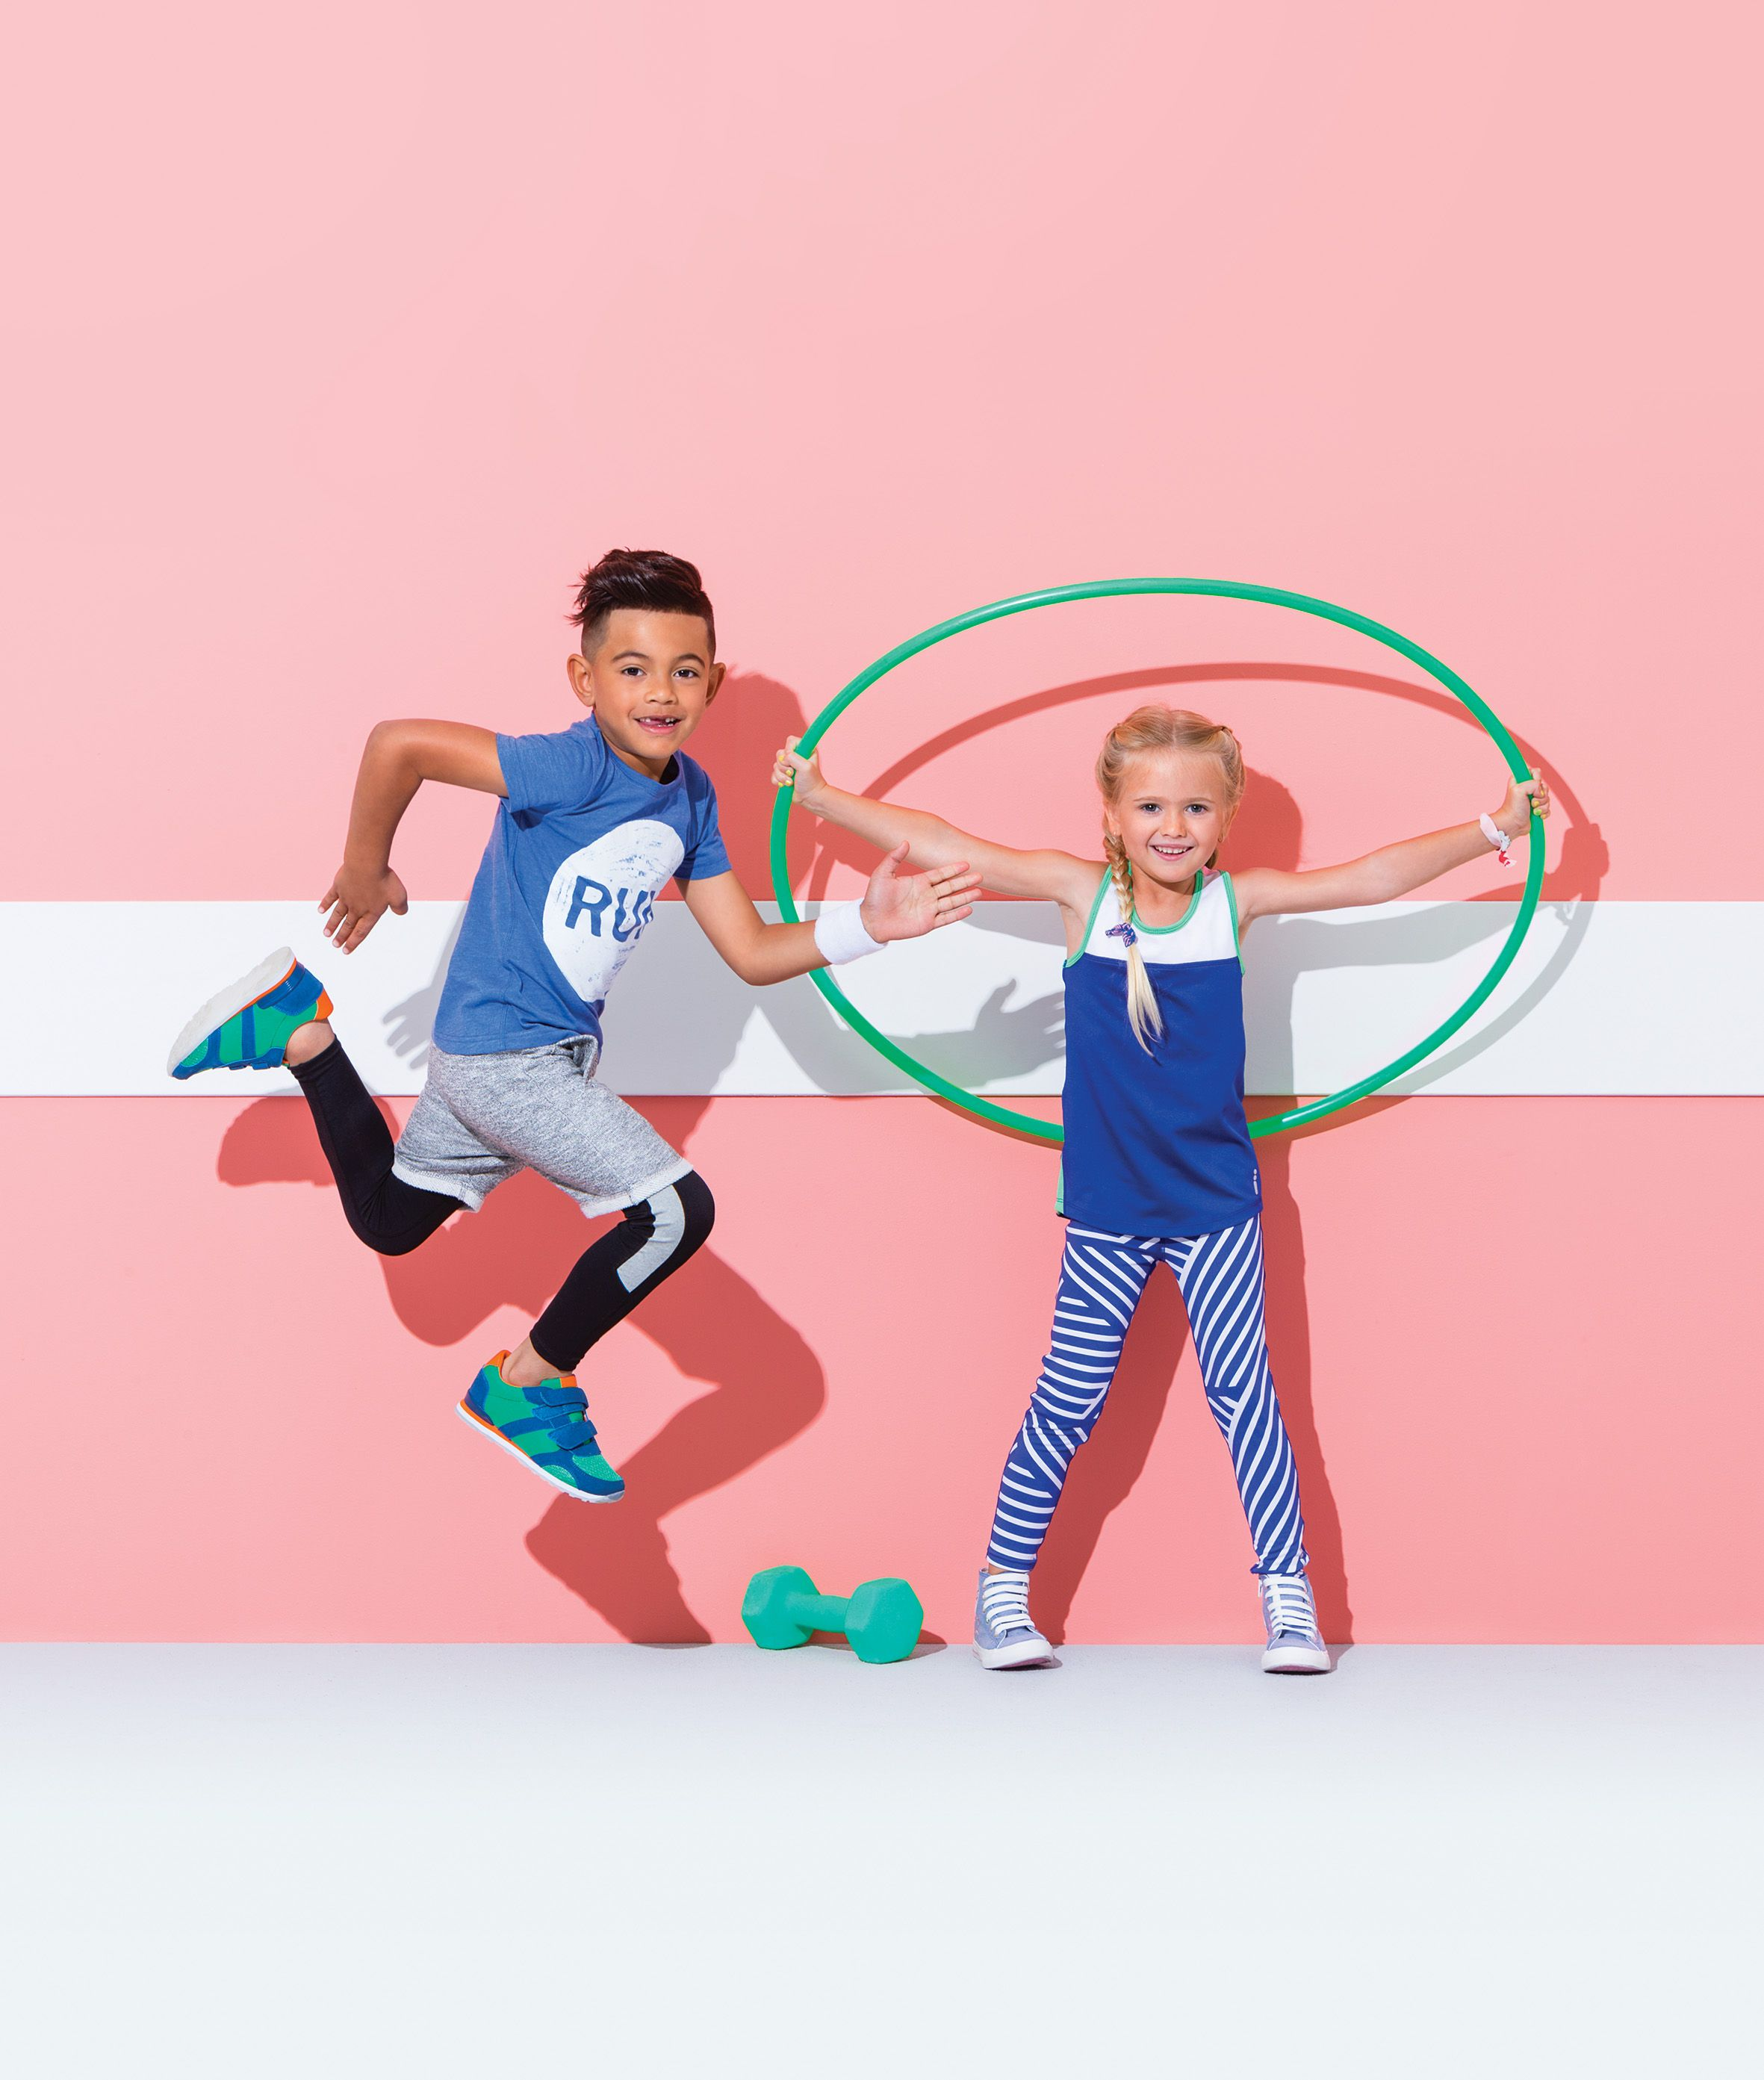 c530ab60ae Cotton On Kids Active Campaign 2016 // www.cottononkids.com | Cool ...